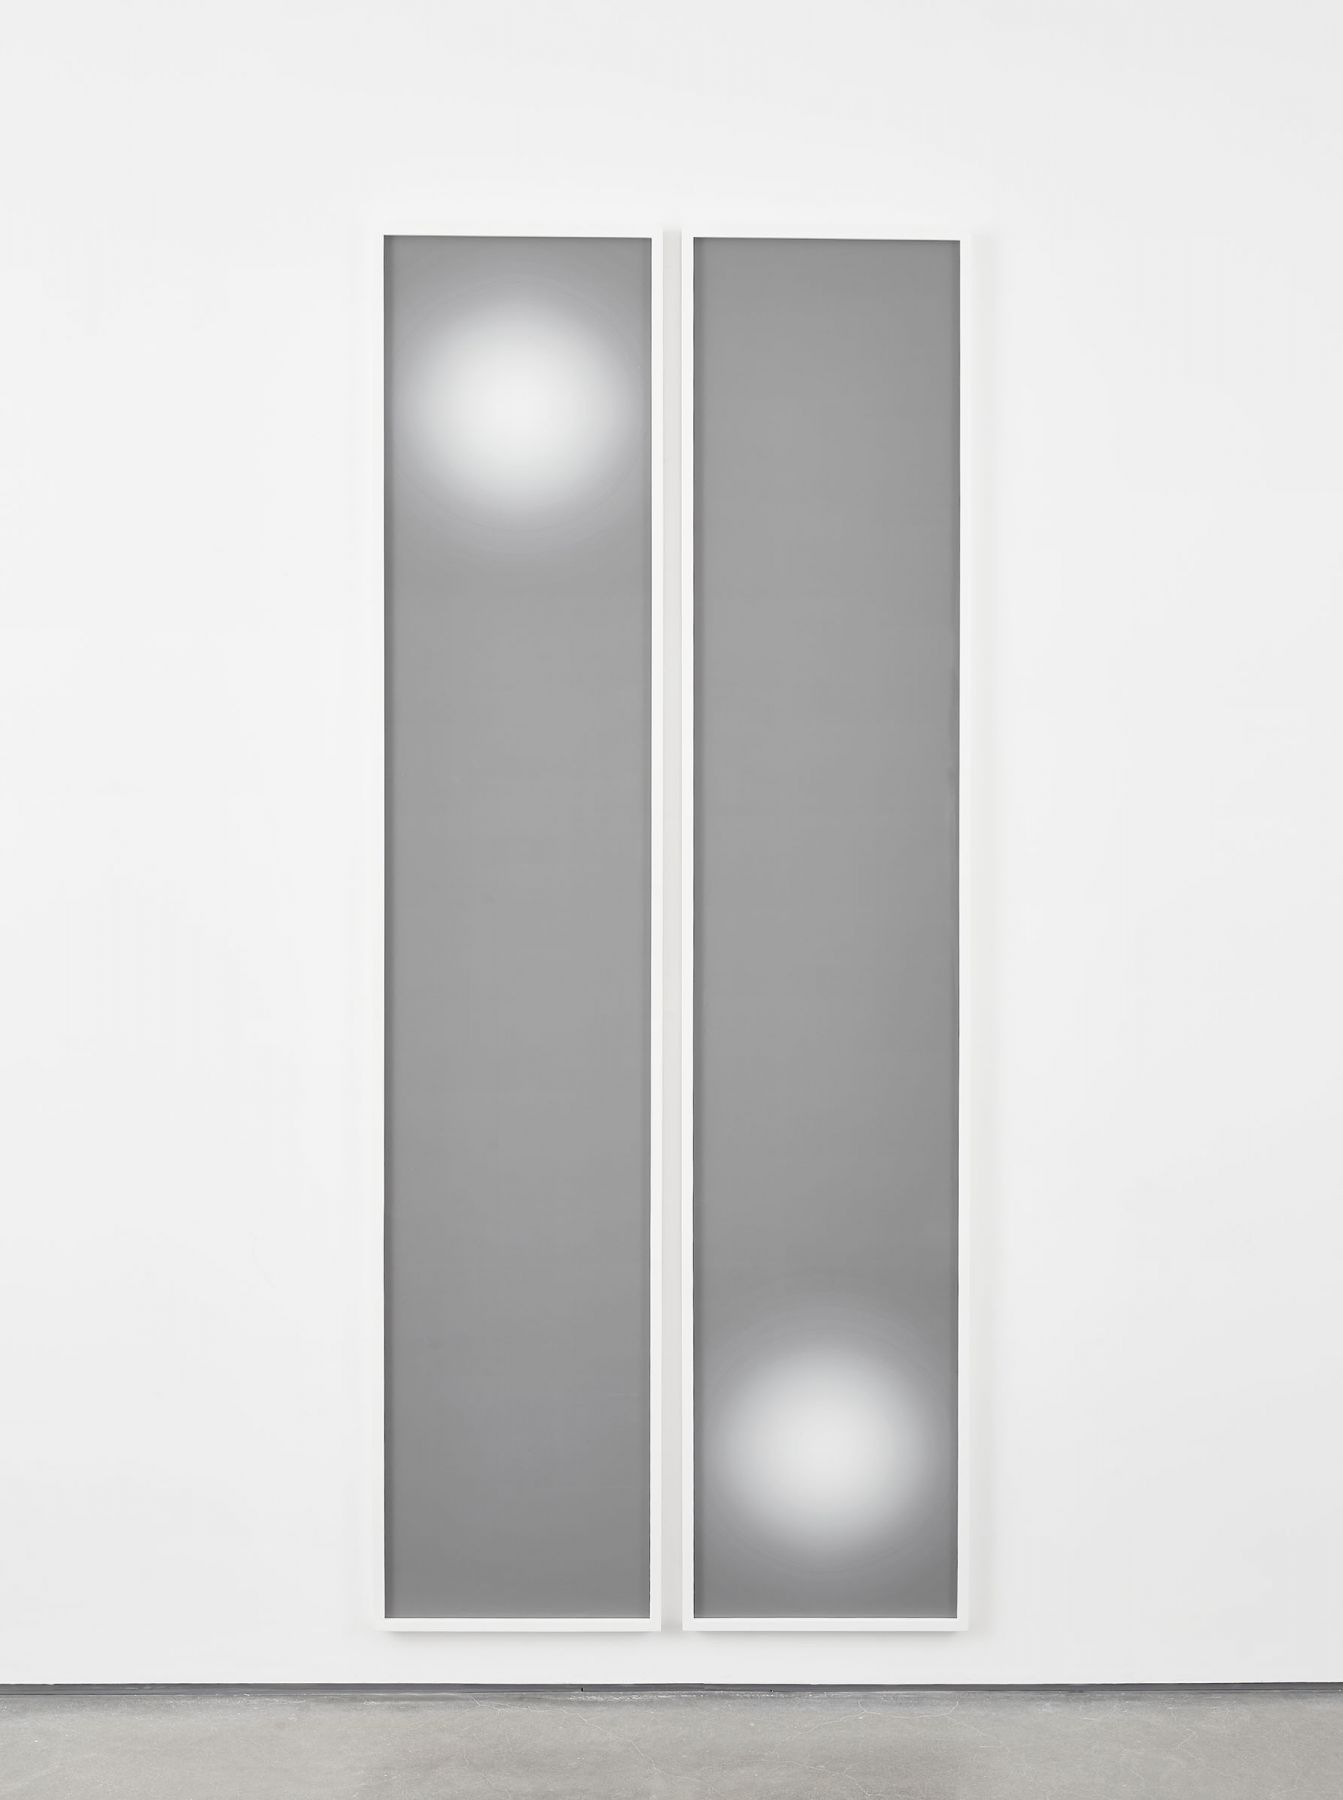 minimalist photographs in grey and white by contemporary artist anthony pearson